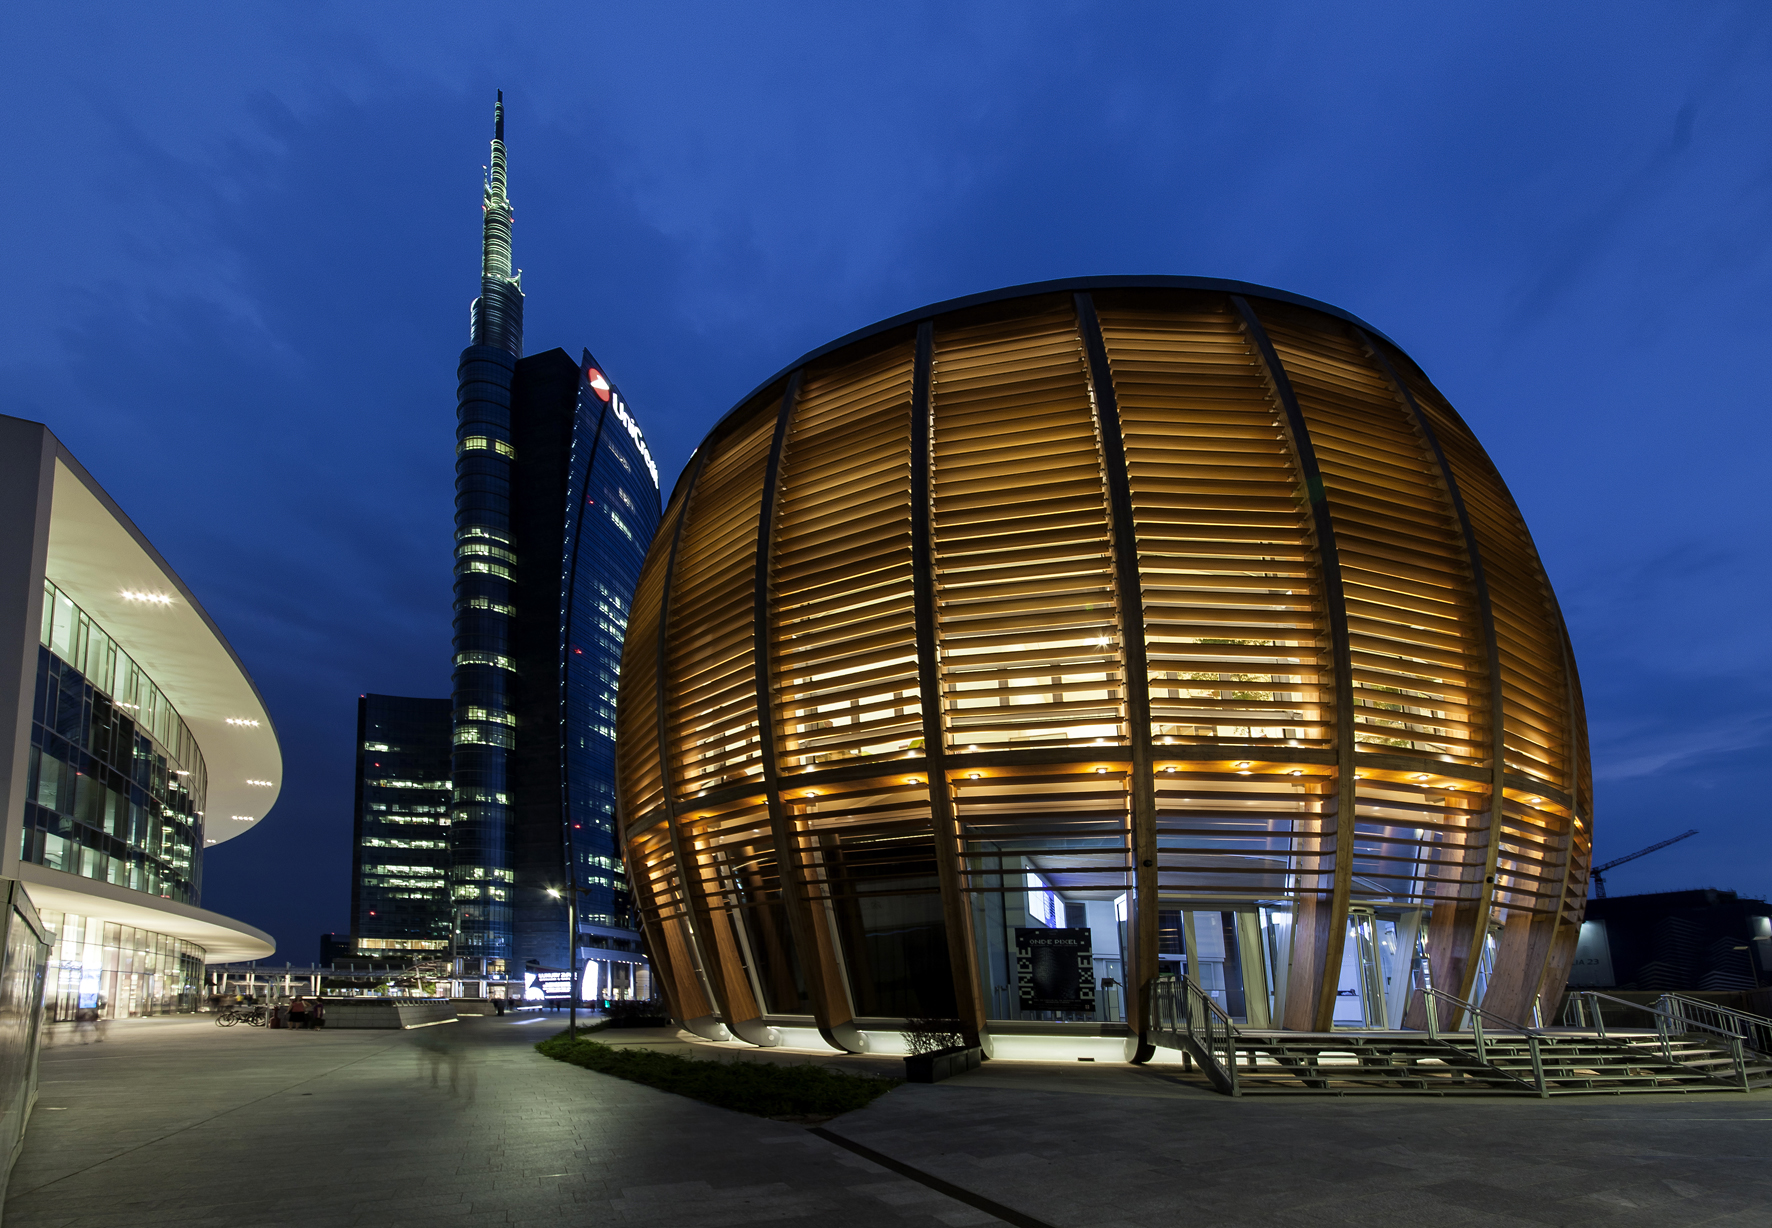 Moderne Pavillons Unicredit Pavillon In Mailand – Beleuchtung Als